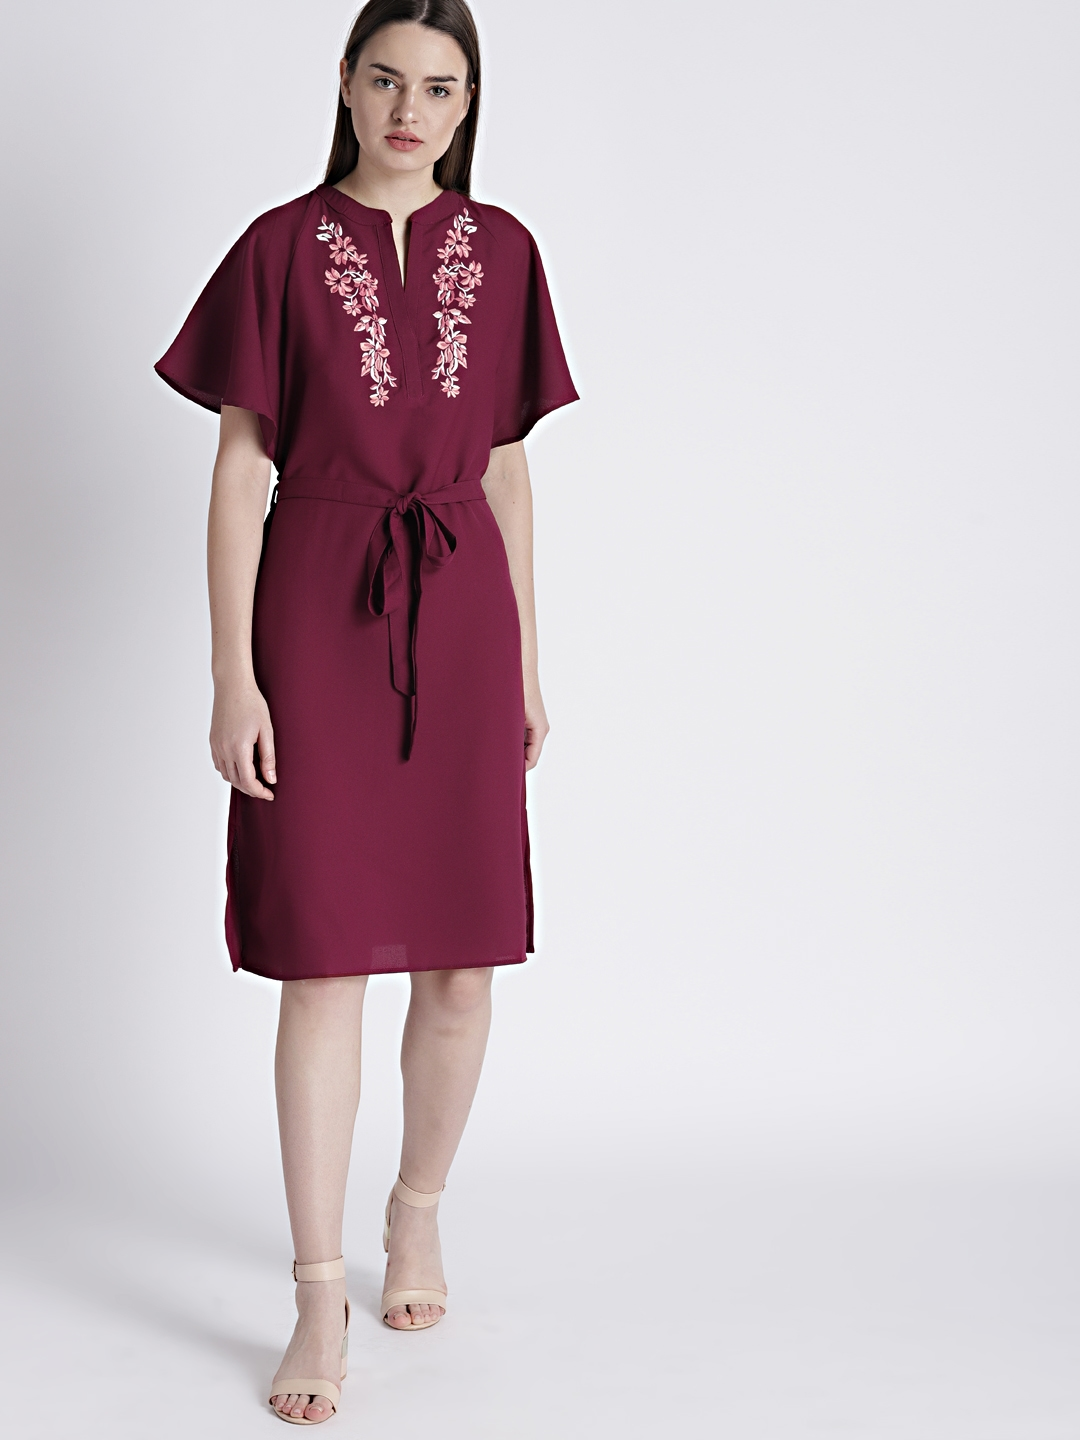 b69962e7a0e7 Buy Chemistry Women Burgundy Embroidered Fit And Flare Dress ...